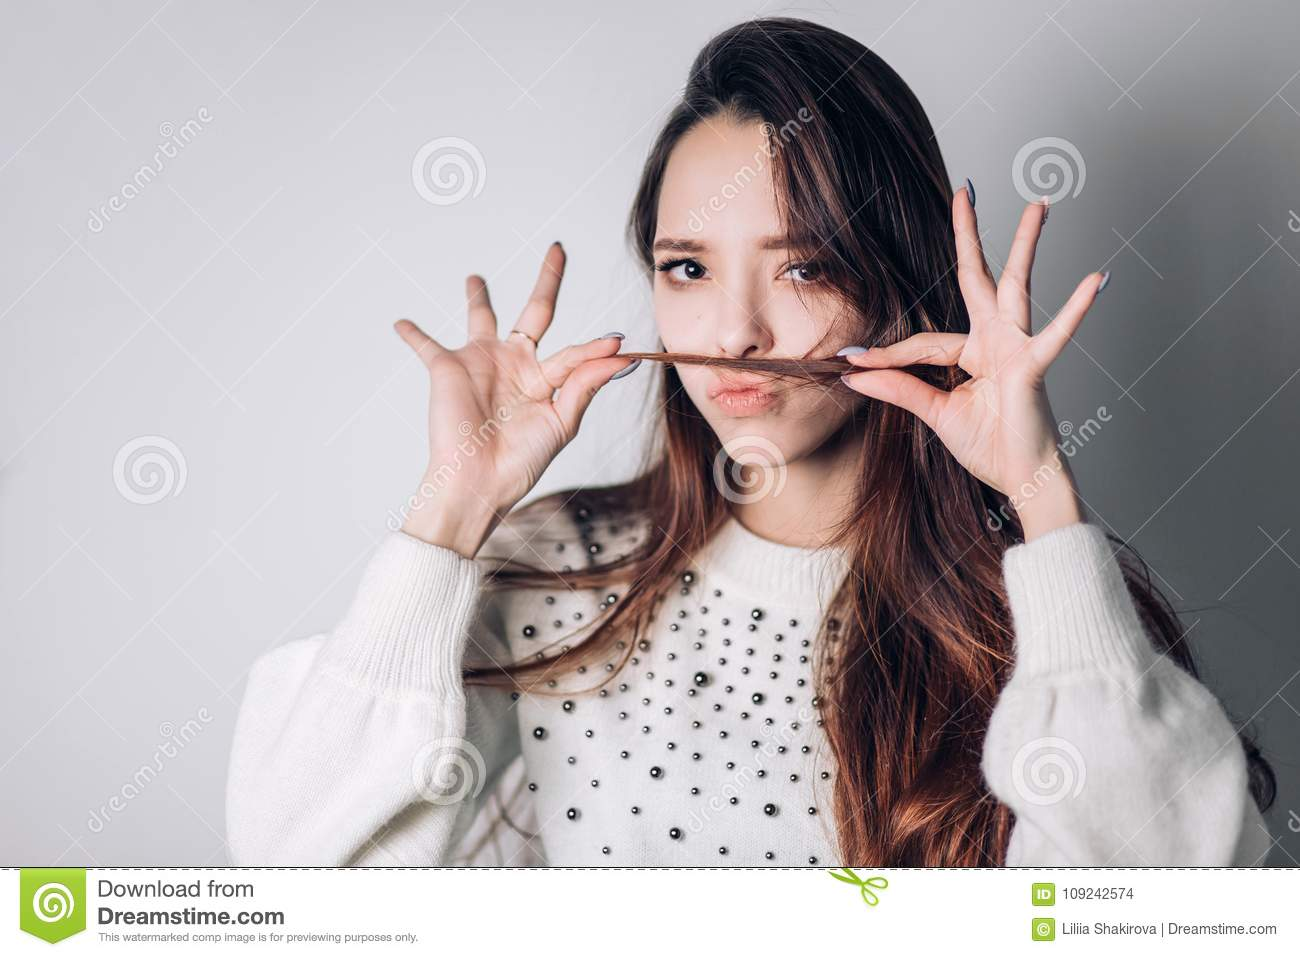 Cute lovely young woman making moustache with her hair over white background. The girl makes a face that shows emotions,